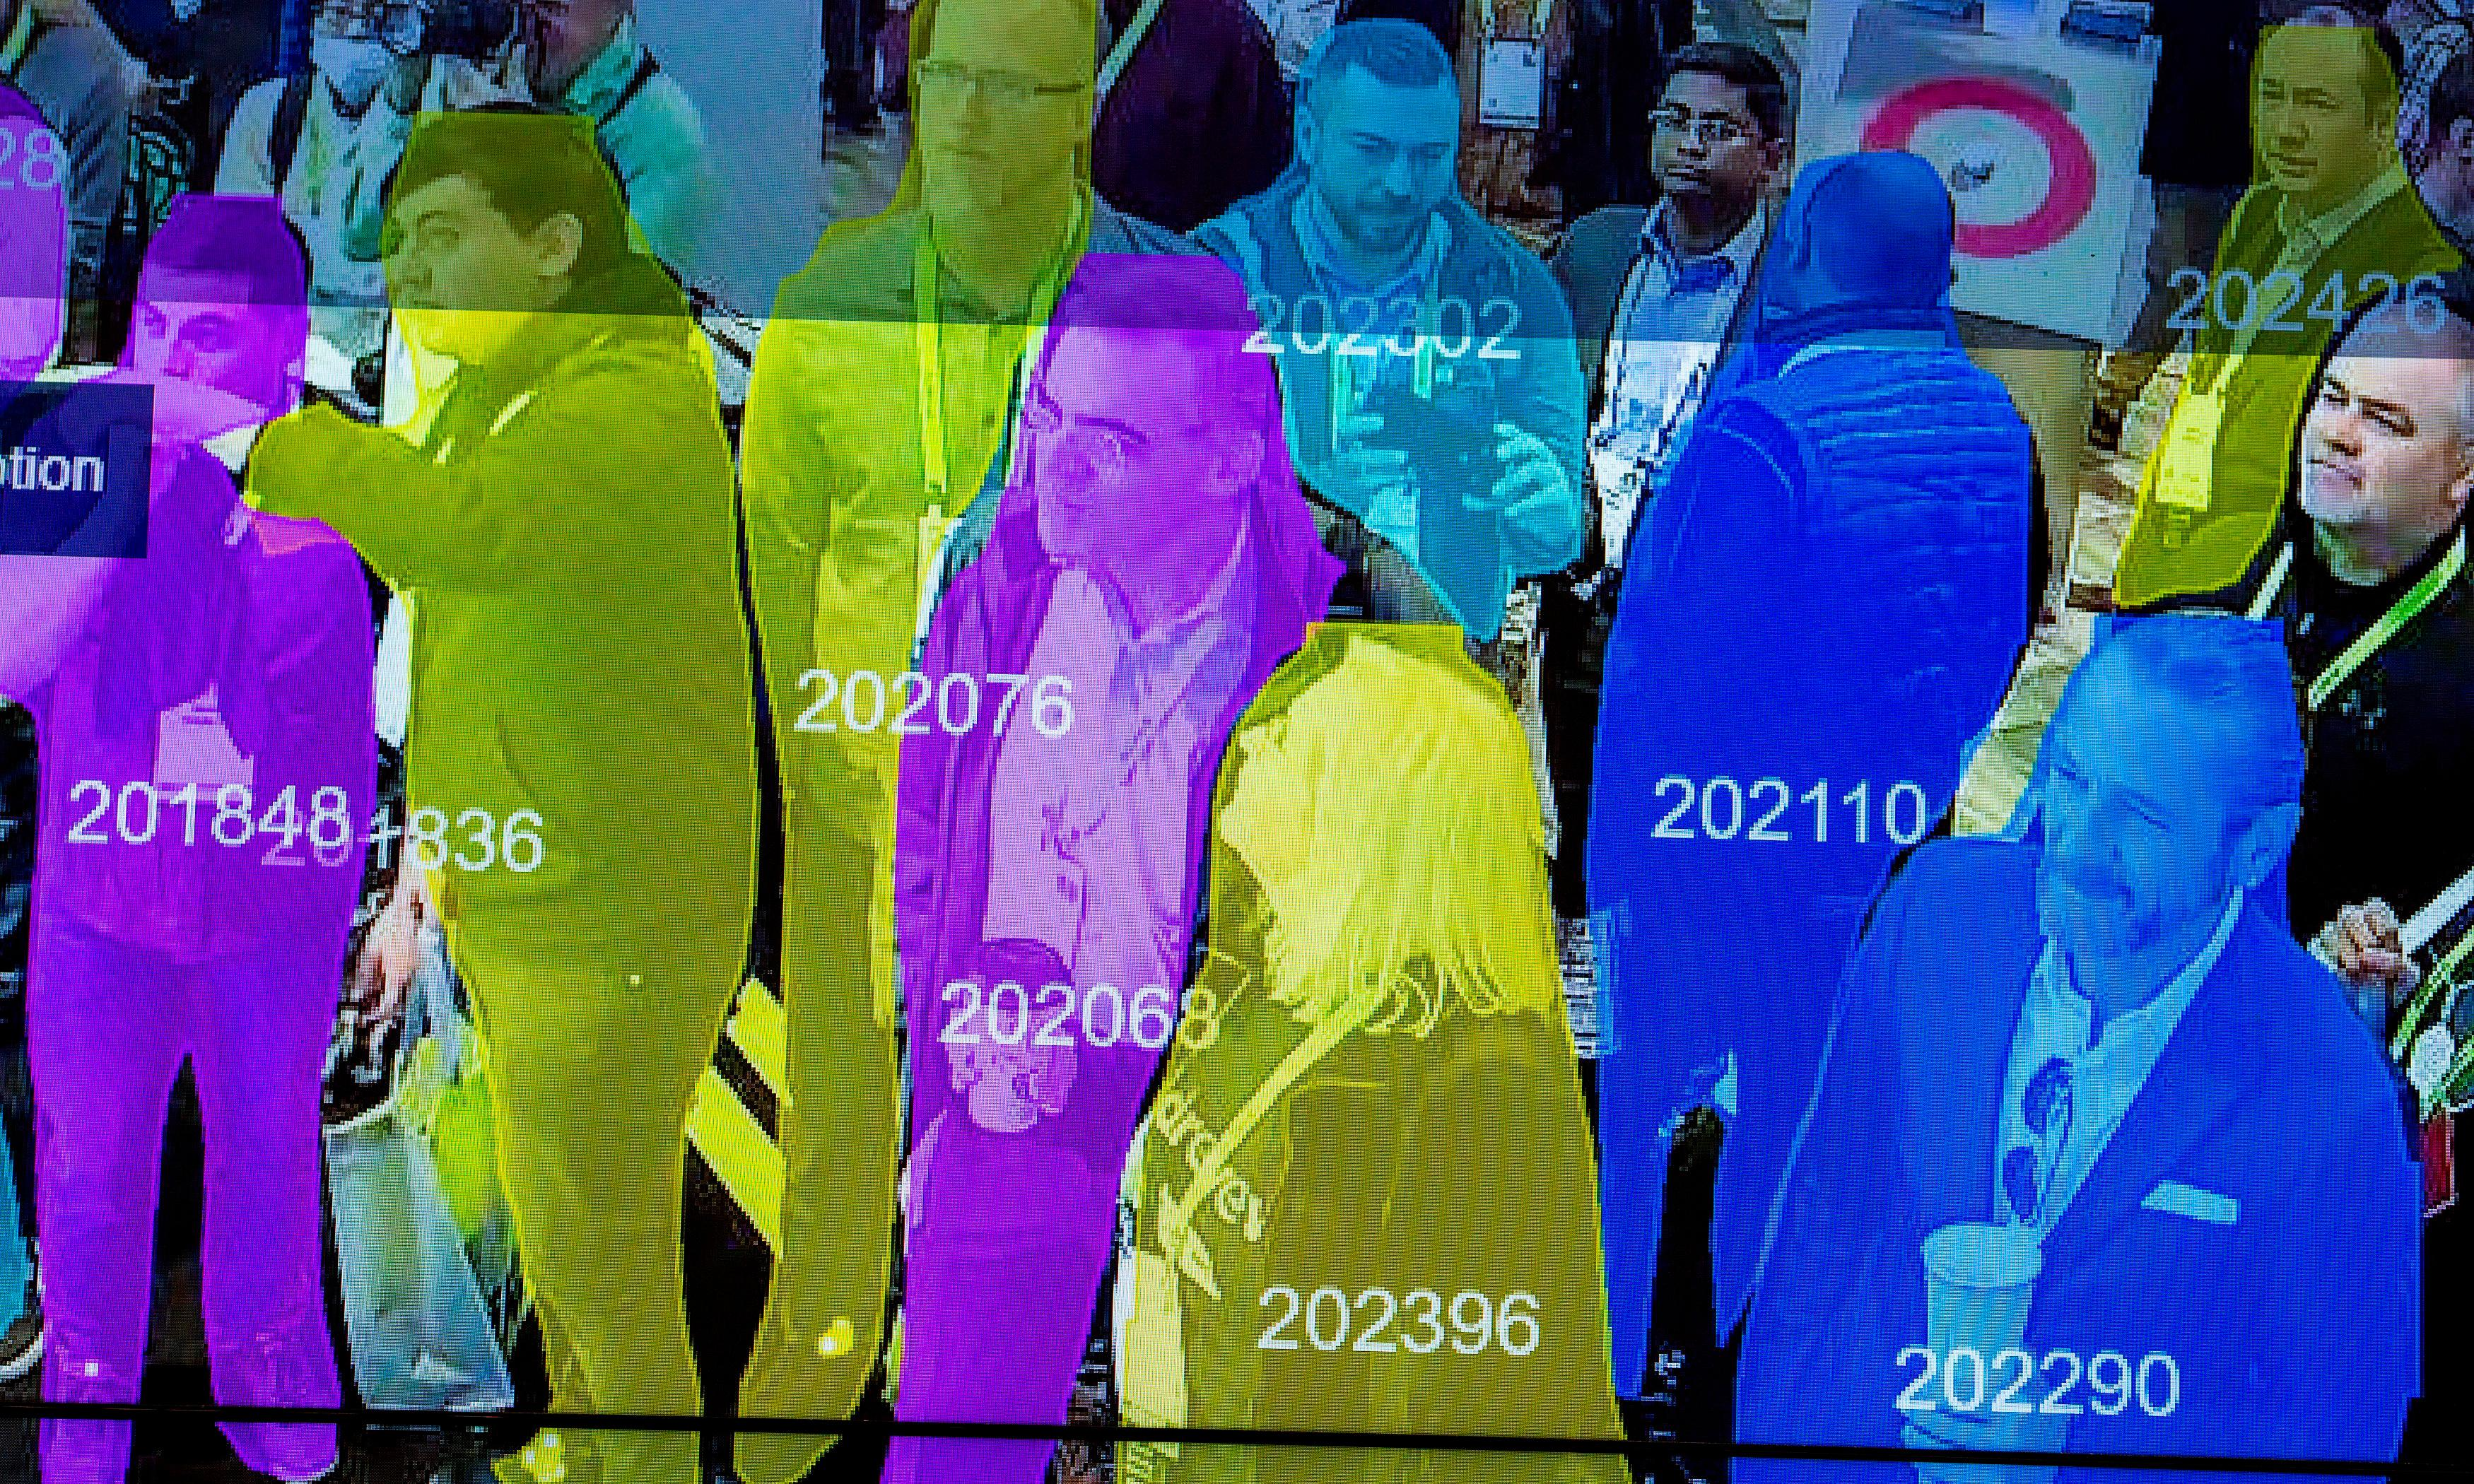 Facial recognition is now rampant. The implications for our freedom are chilling